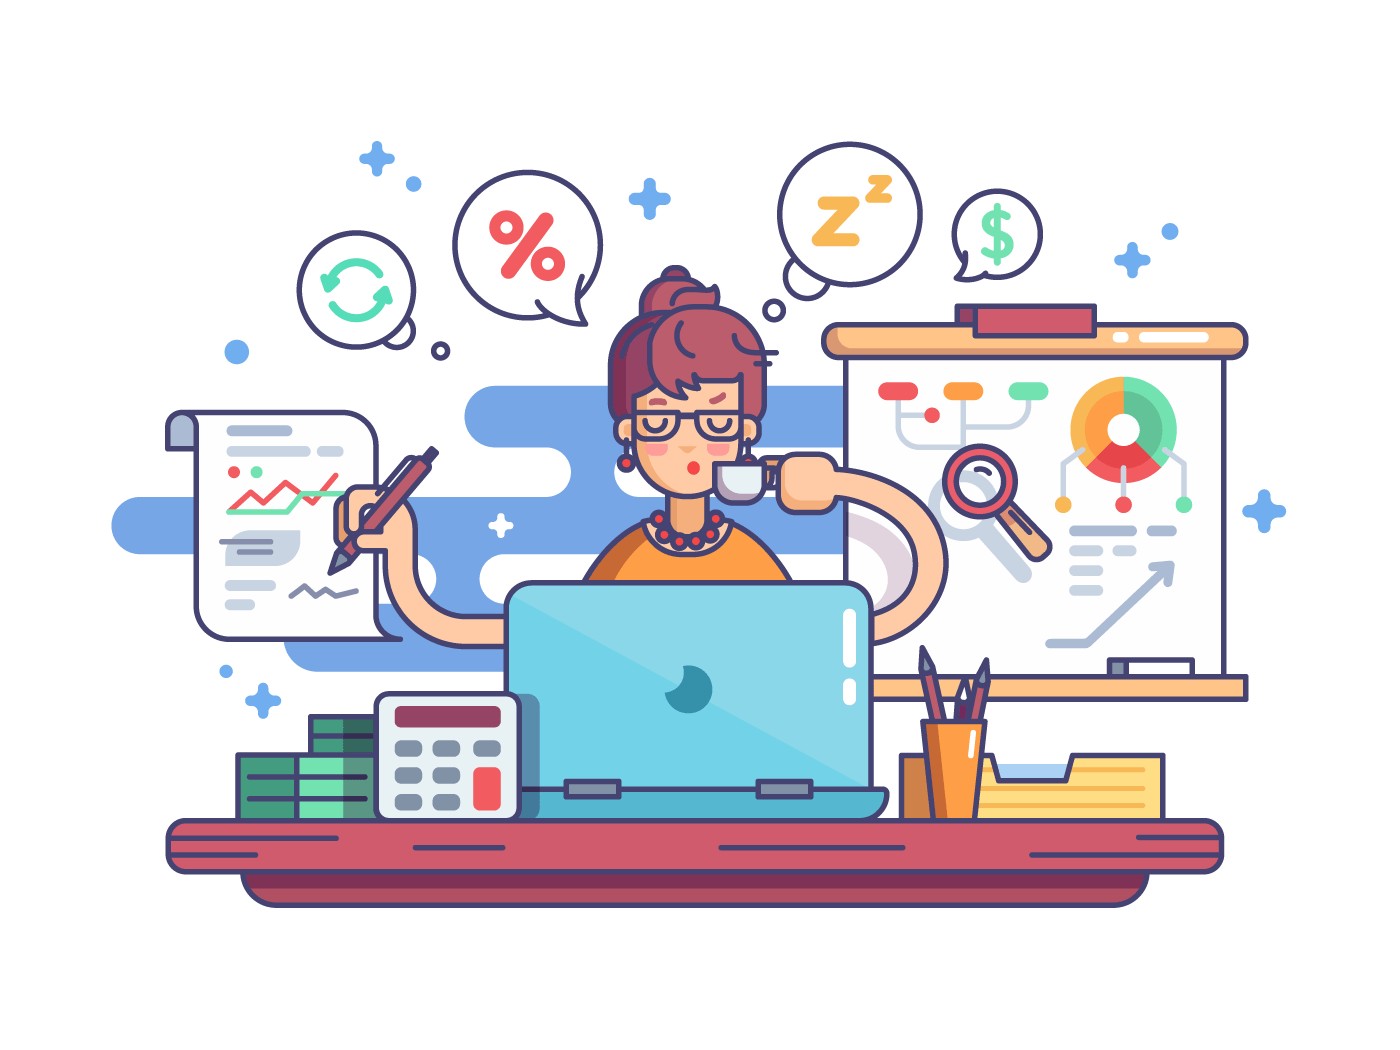 Woman financial accountant illustration